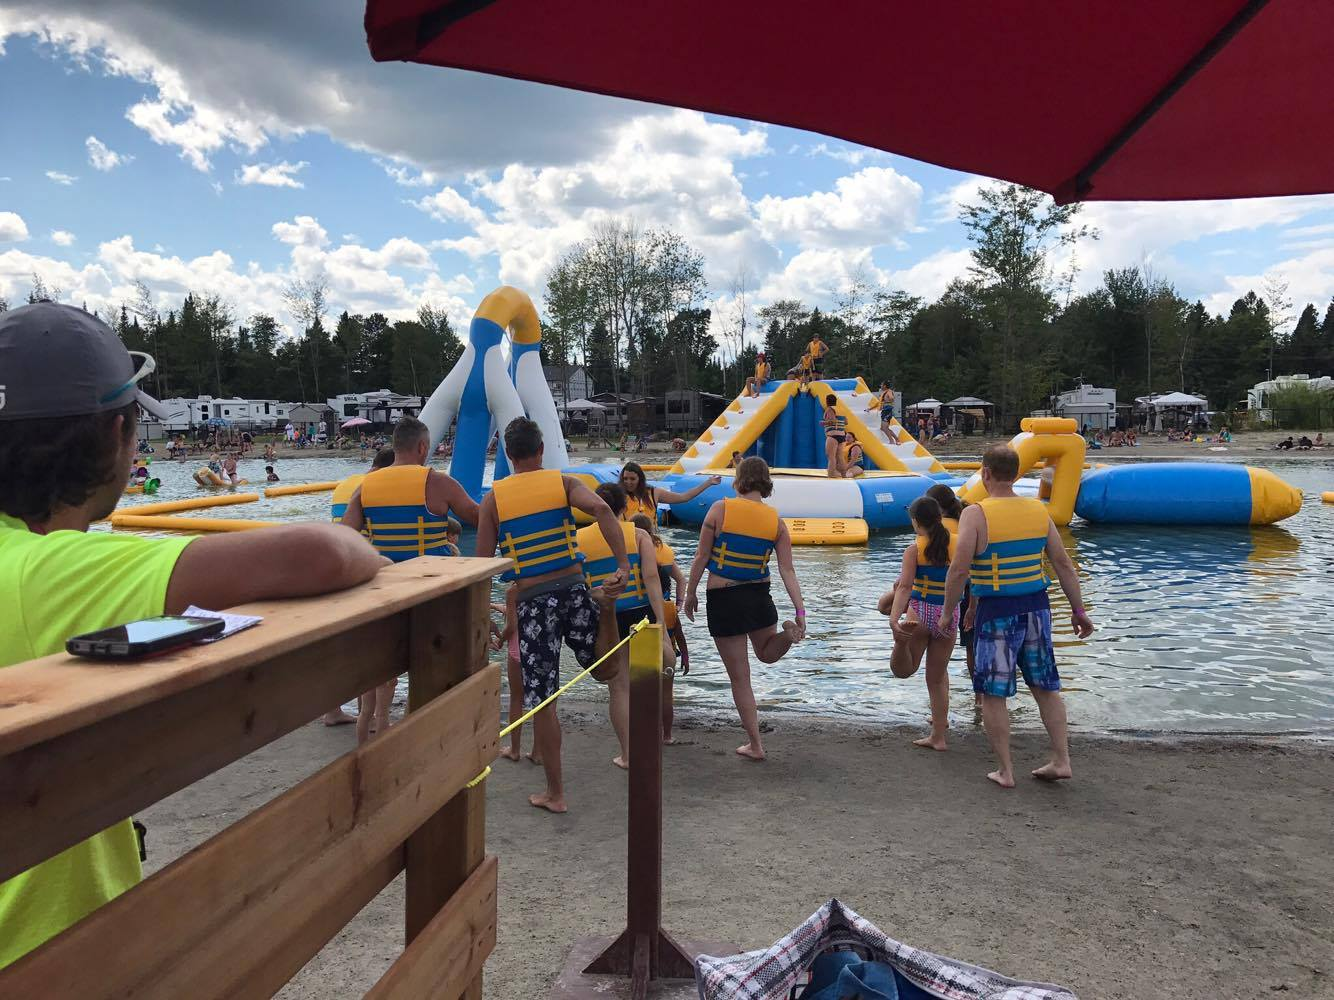 http://www.familizoo.com/ENG/wp-content/uploads/2019/01/beach-party-2017-complexe-atlantide-13.jpg